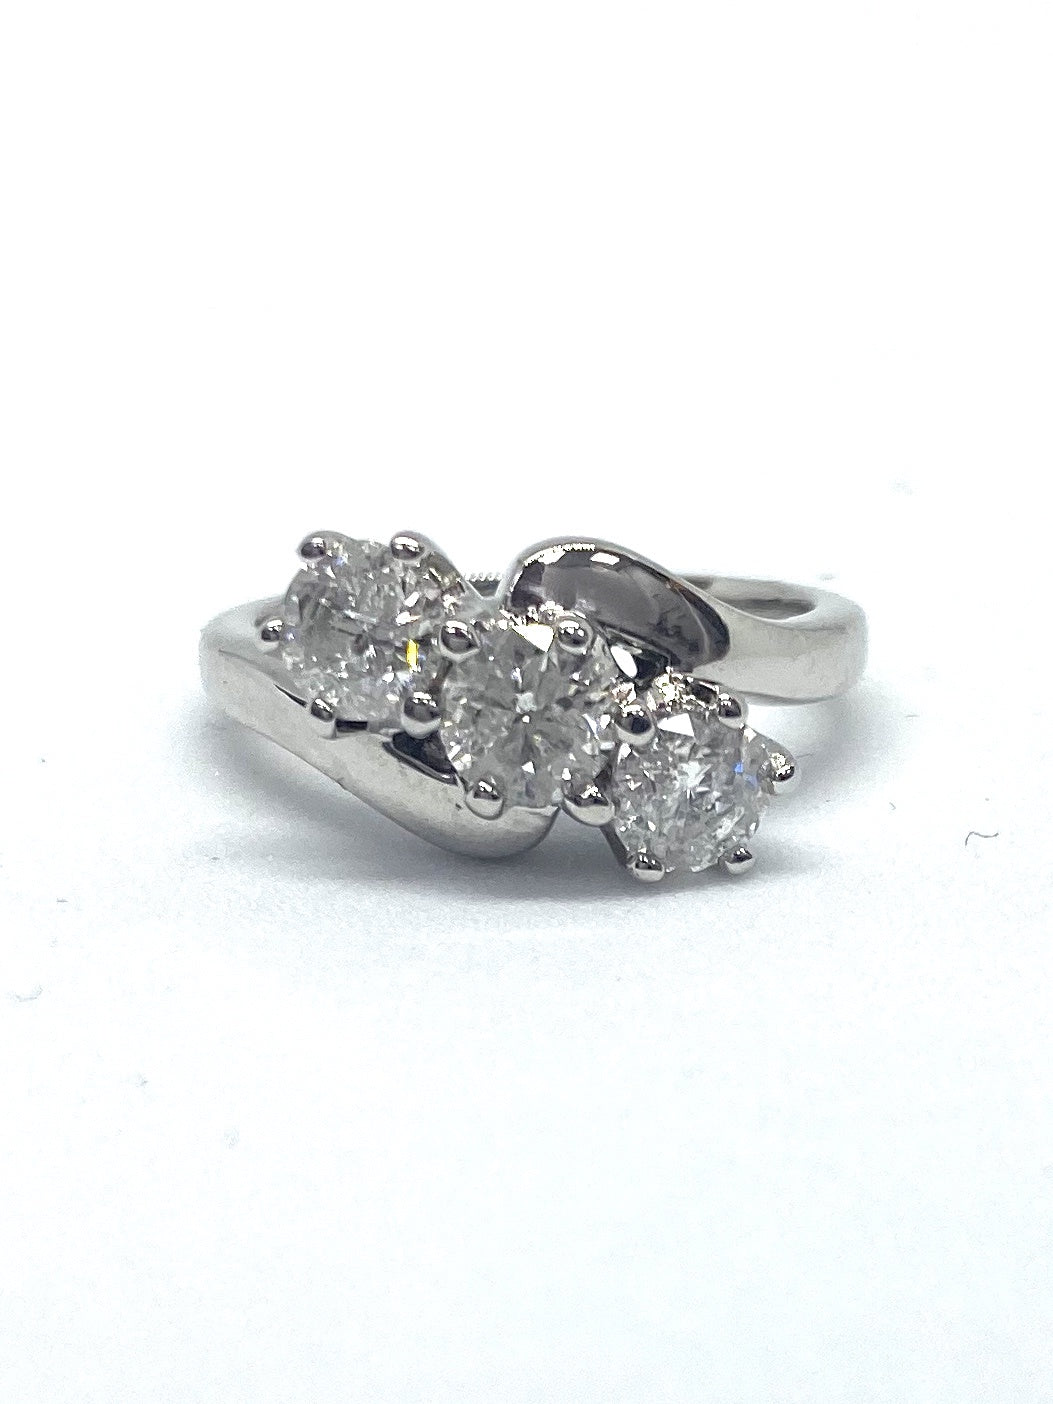 18ct White Gold 1.05cts Trilogy Diamond Ring